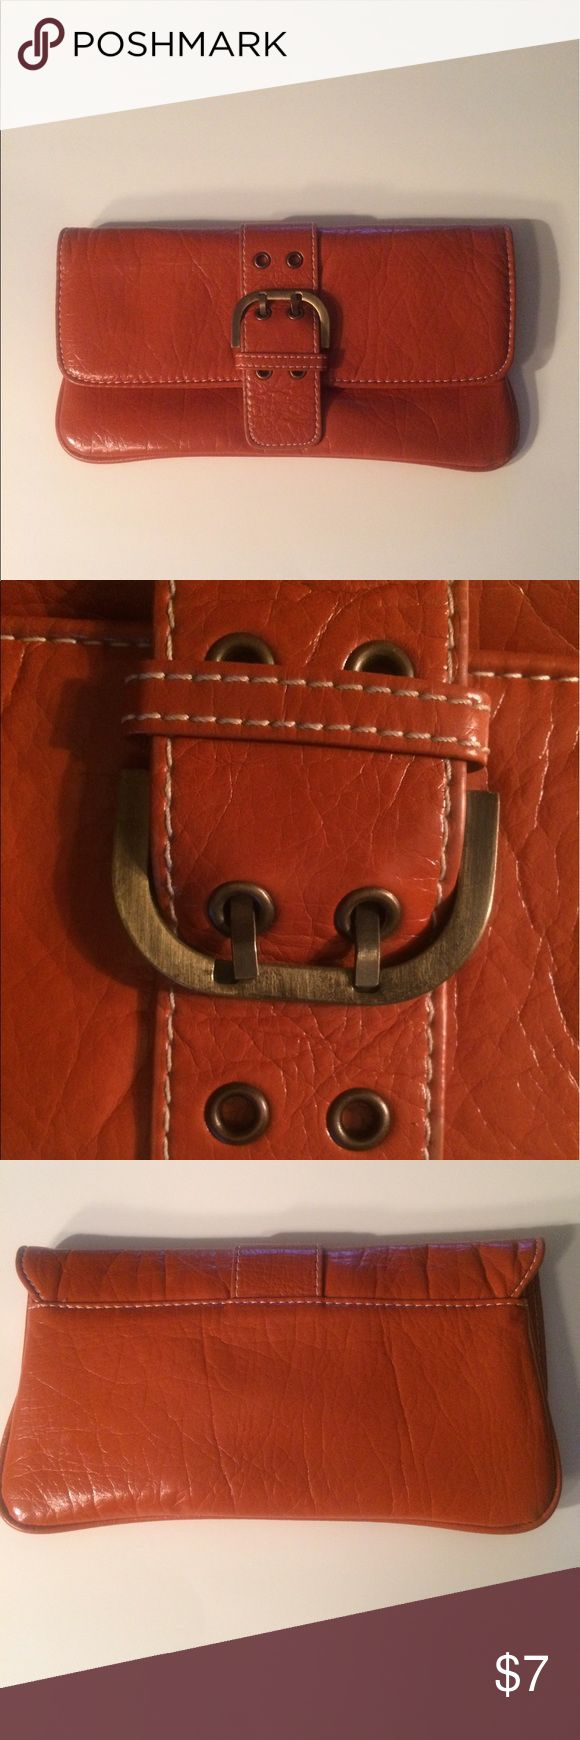 Burnt orange clutch with buckle detail. 10 inches across.  5.4 inches tall.  Snap closure for security.  Zipper pocket inside.  Metal buckle looks tarnished.  No rips. Not leather.  Feels like vinyl.  Pretty  color. Bags Clutches & Wristlets